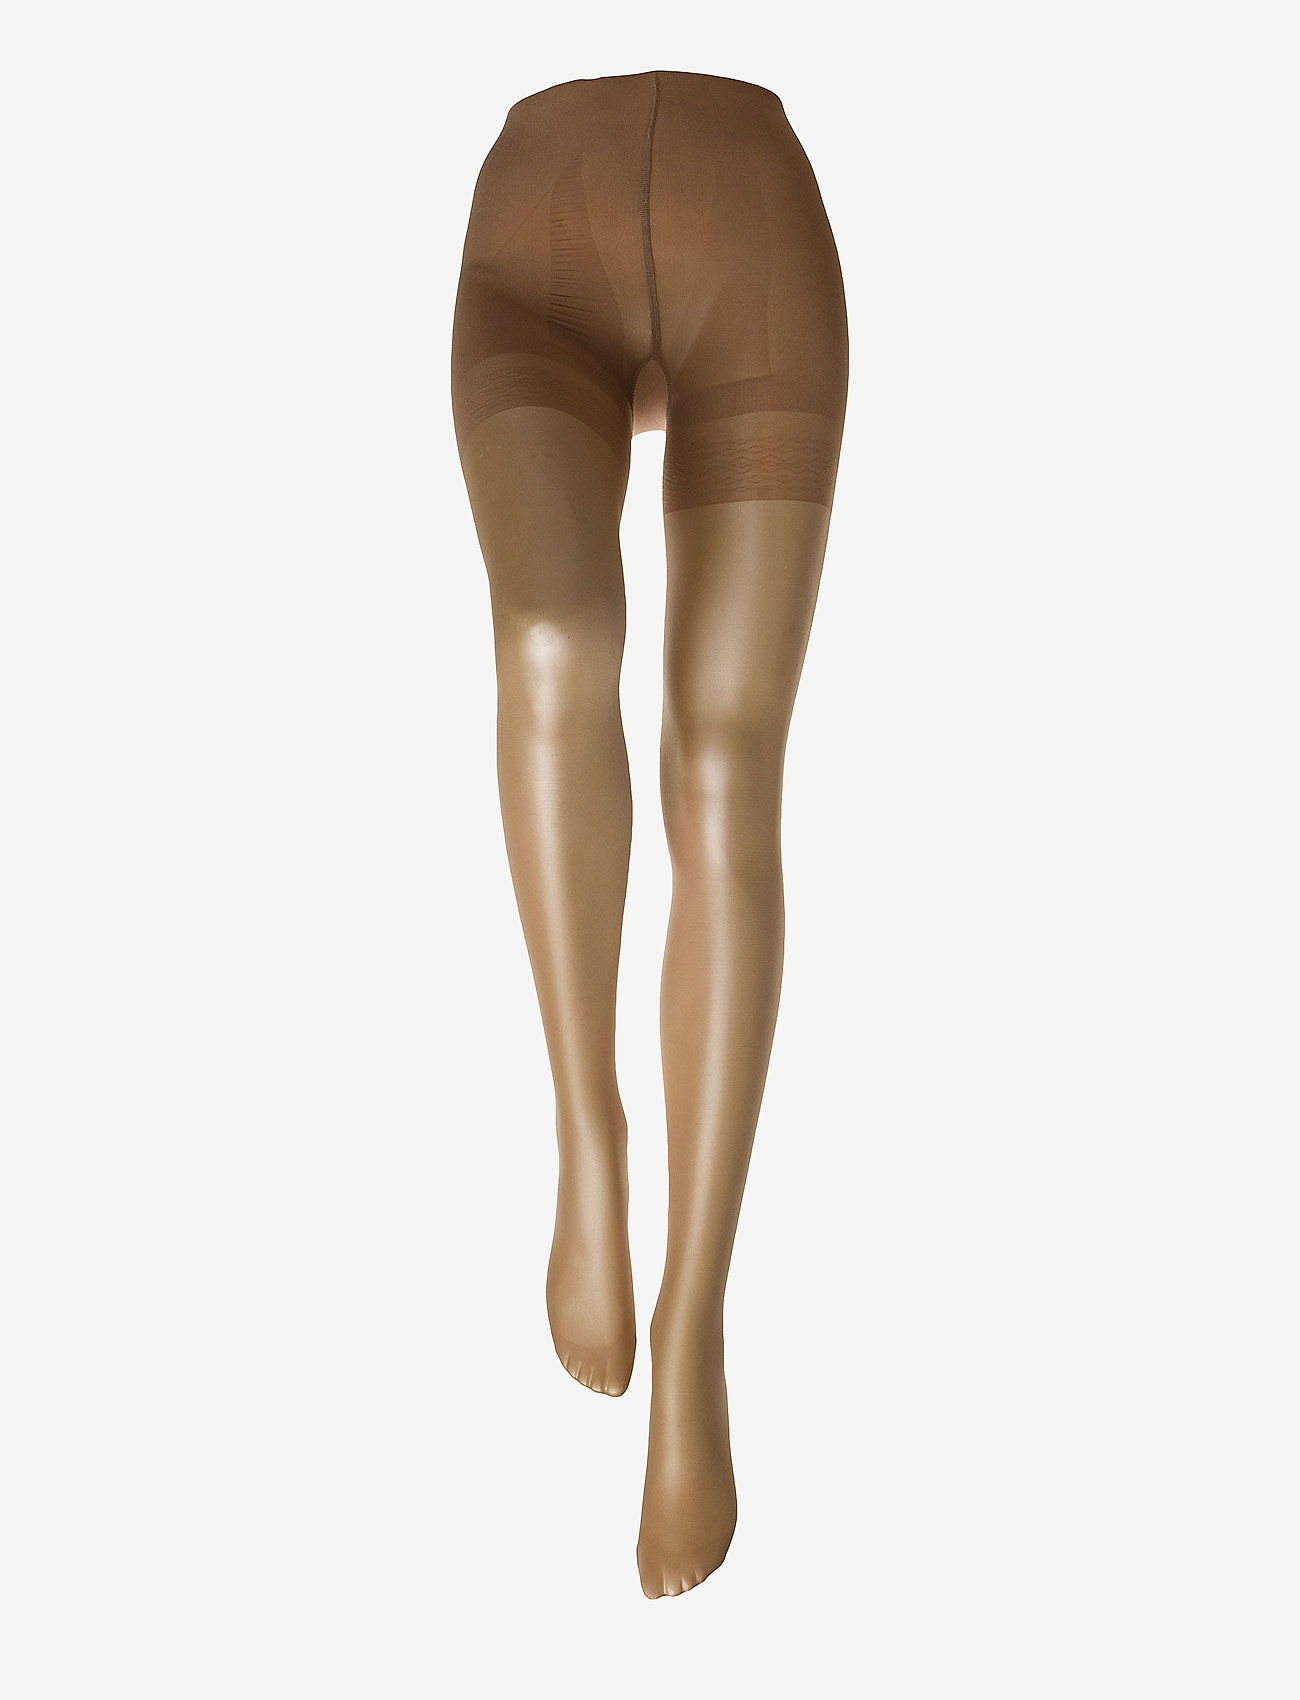 Vogue - Ladies den pantyhose, Silhouette Control Top 20den - basic - suntan - 1